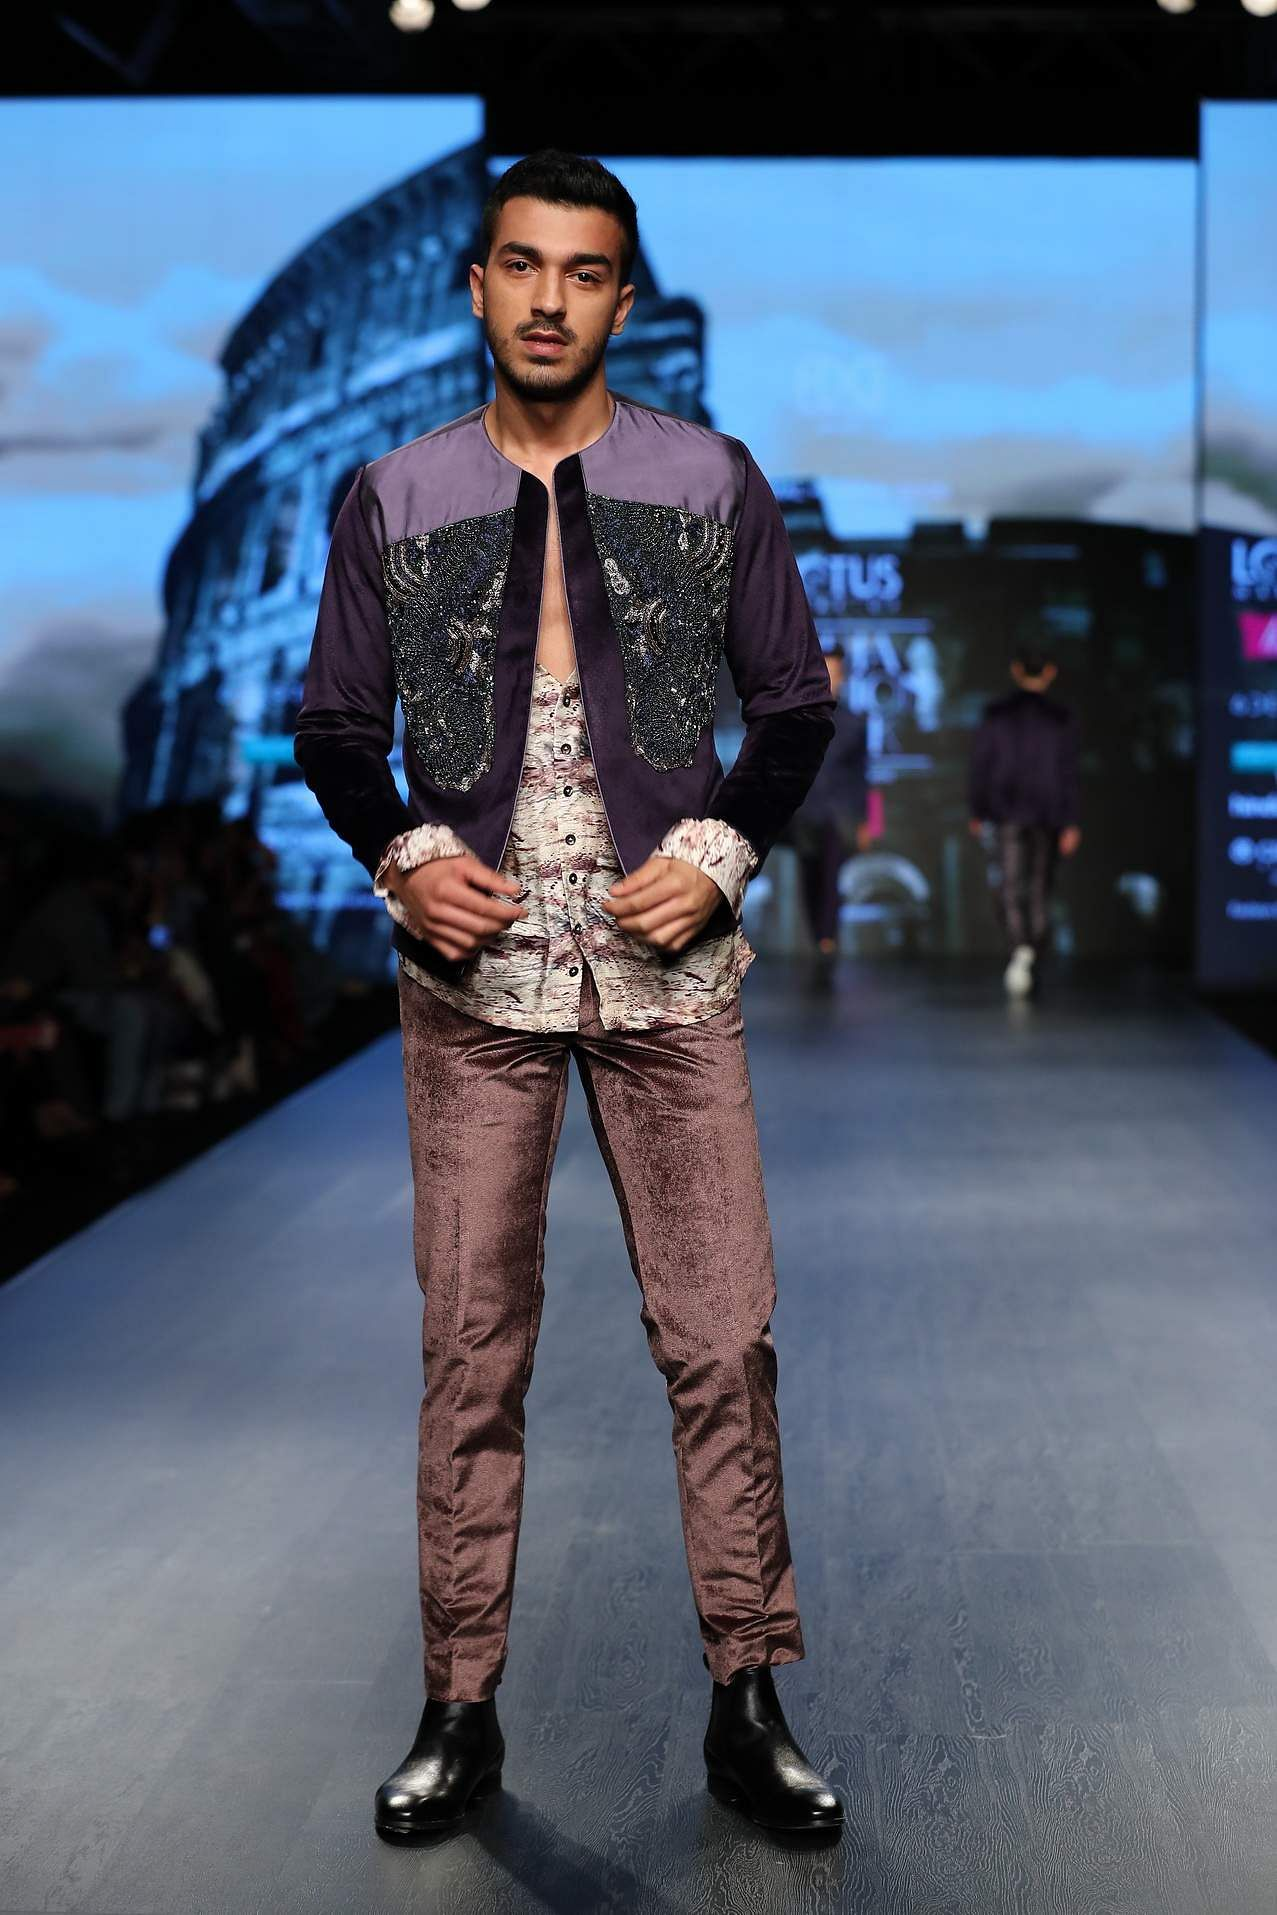 ae79467cc3 Smooth velvet. Kommal and Ratul Sood's collection, following a gothic  theme, was heavy on velvet. Hues such as brown, green, aubergine and teal  were seen on ...